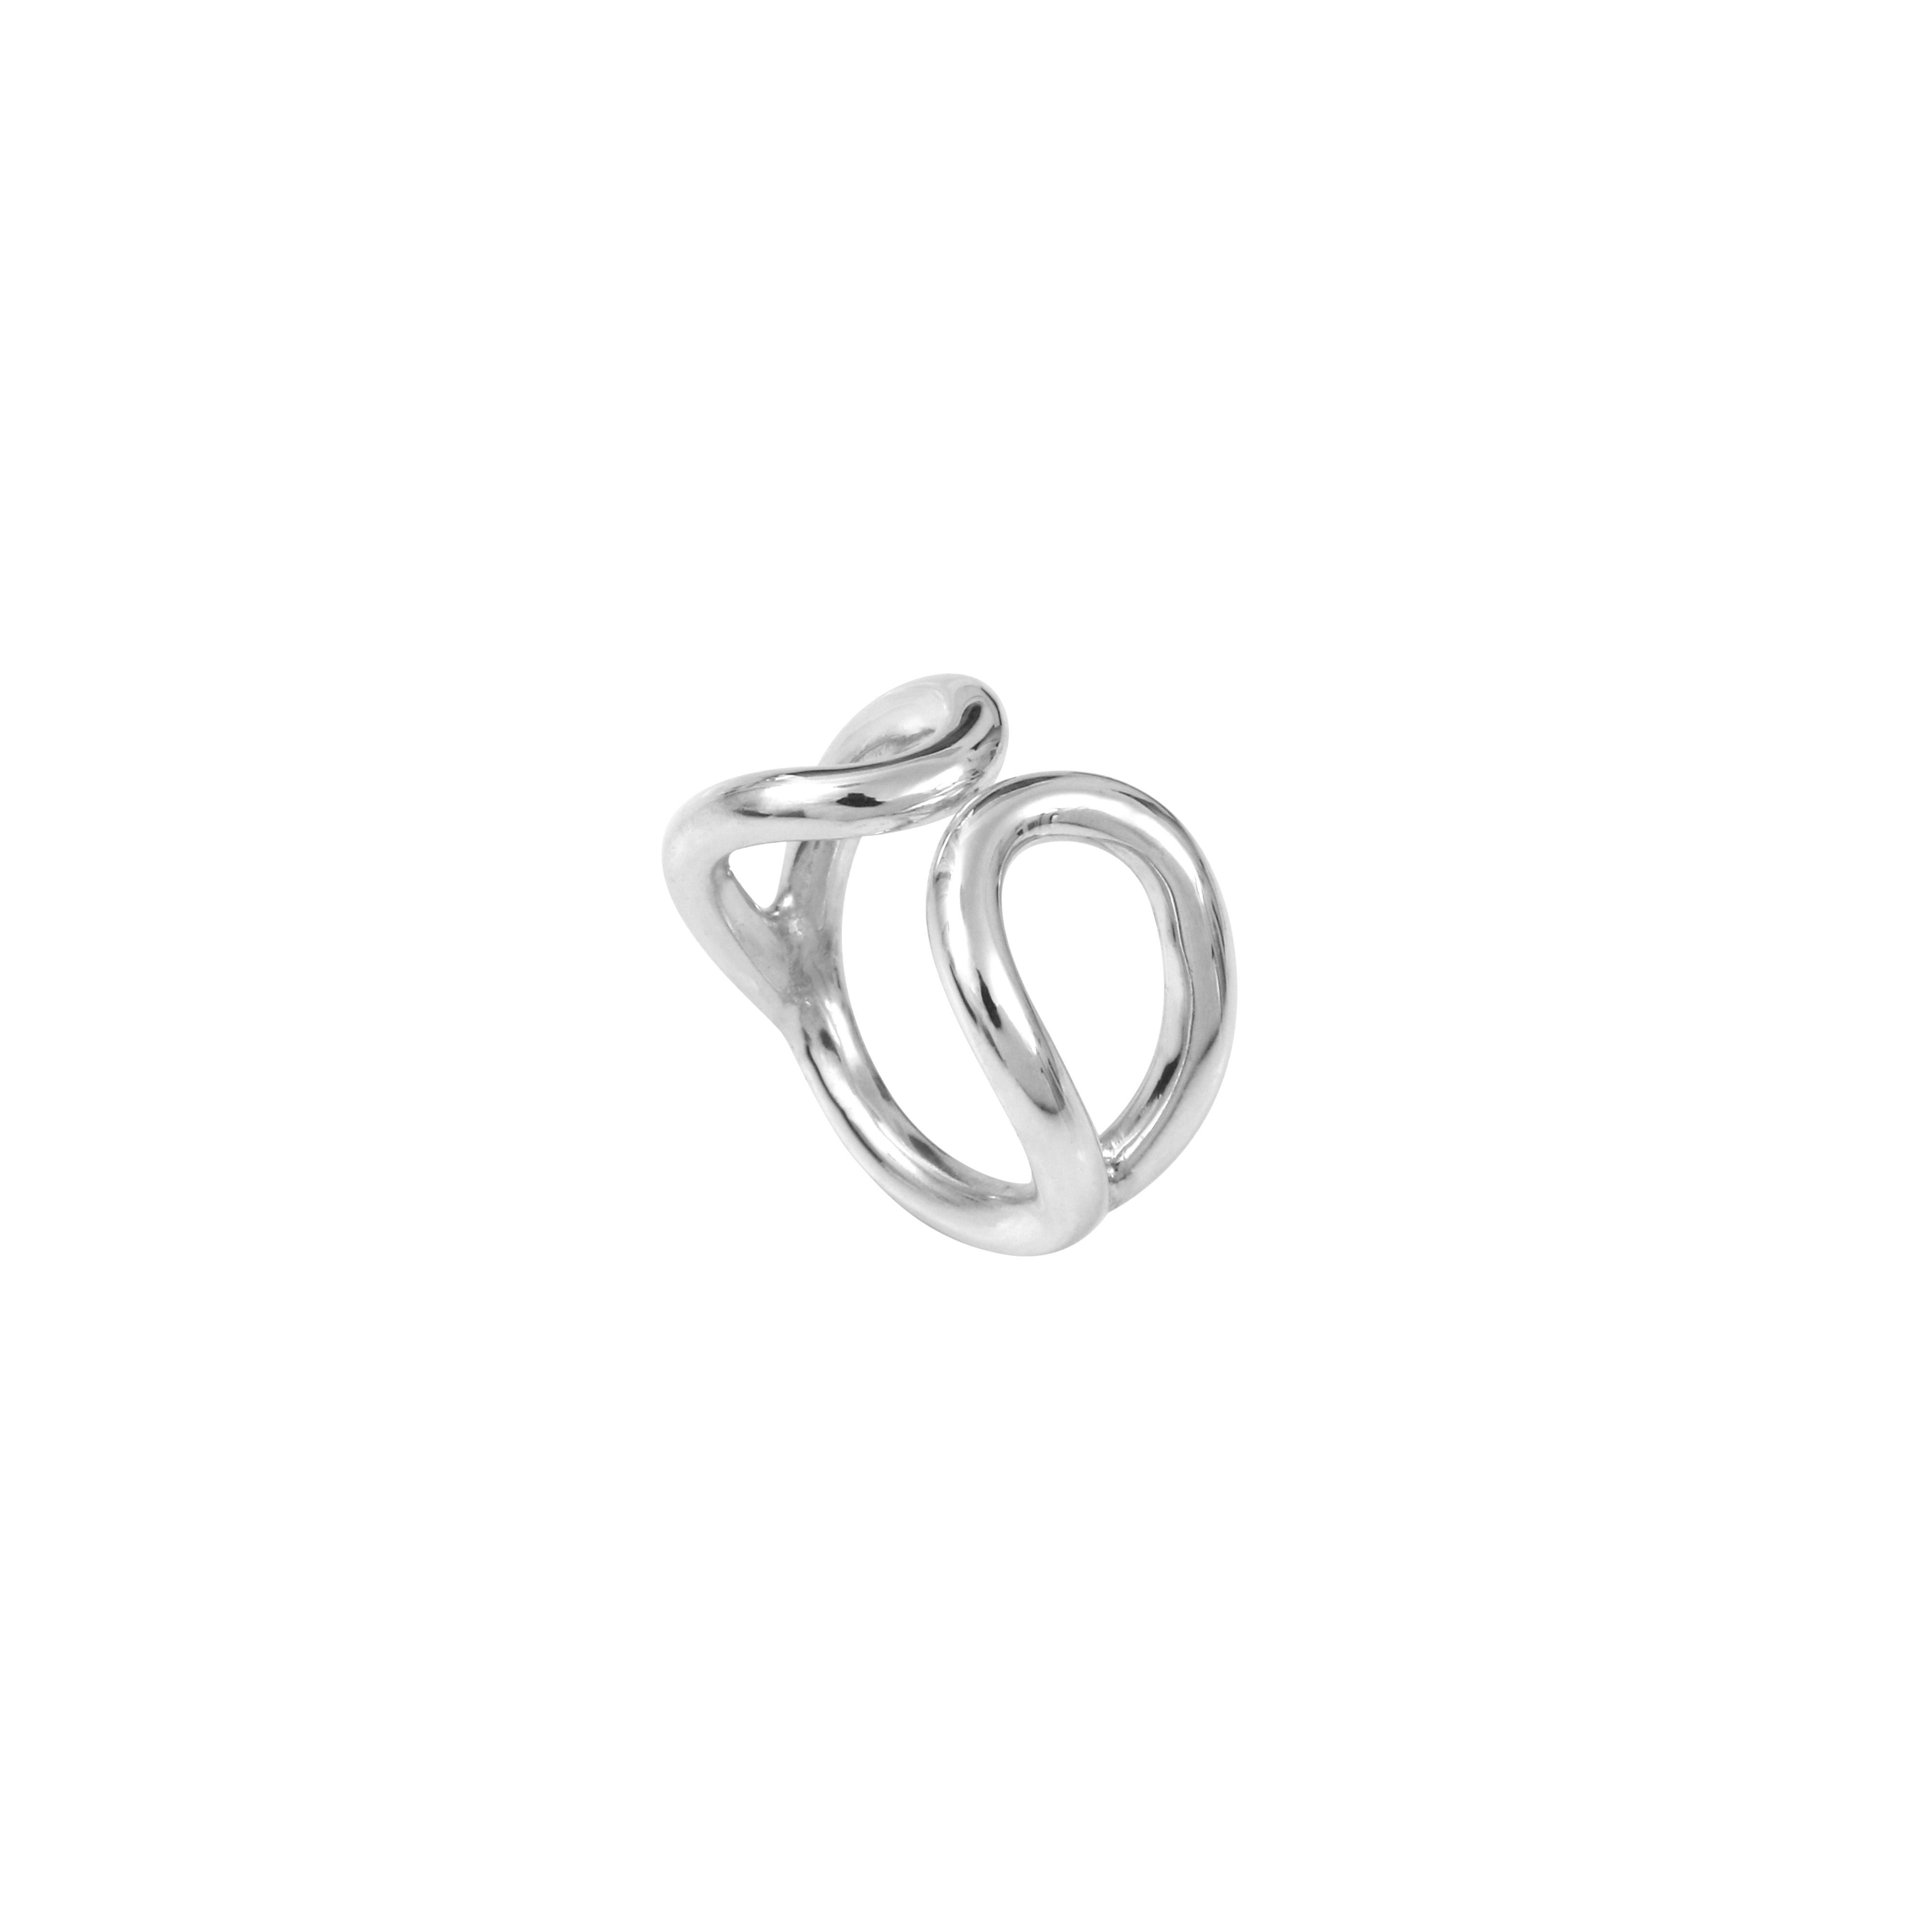 Aurore Havenne Silver Attracting Raindrops Ring minimalist jewellery bijou simple designer